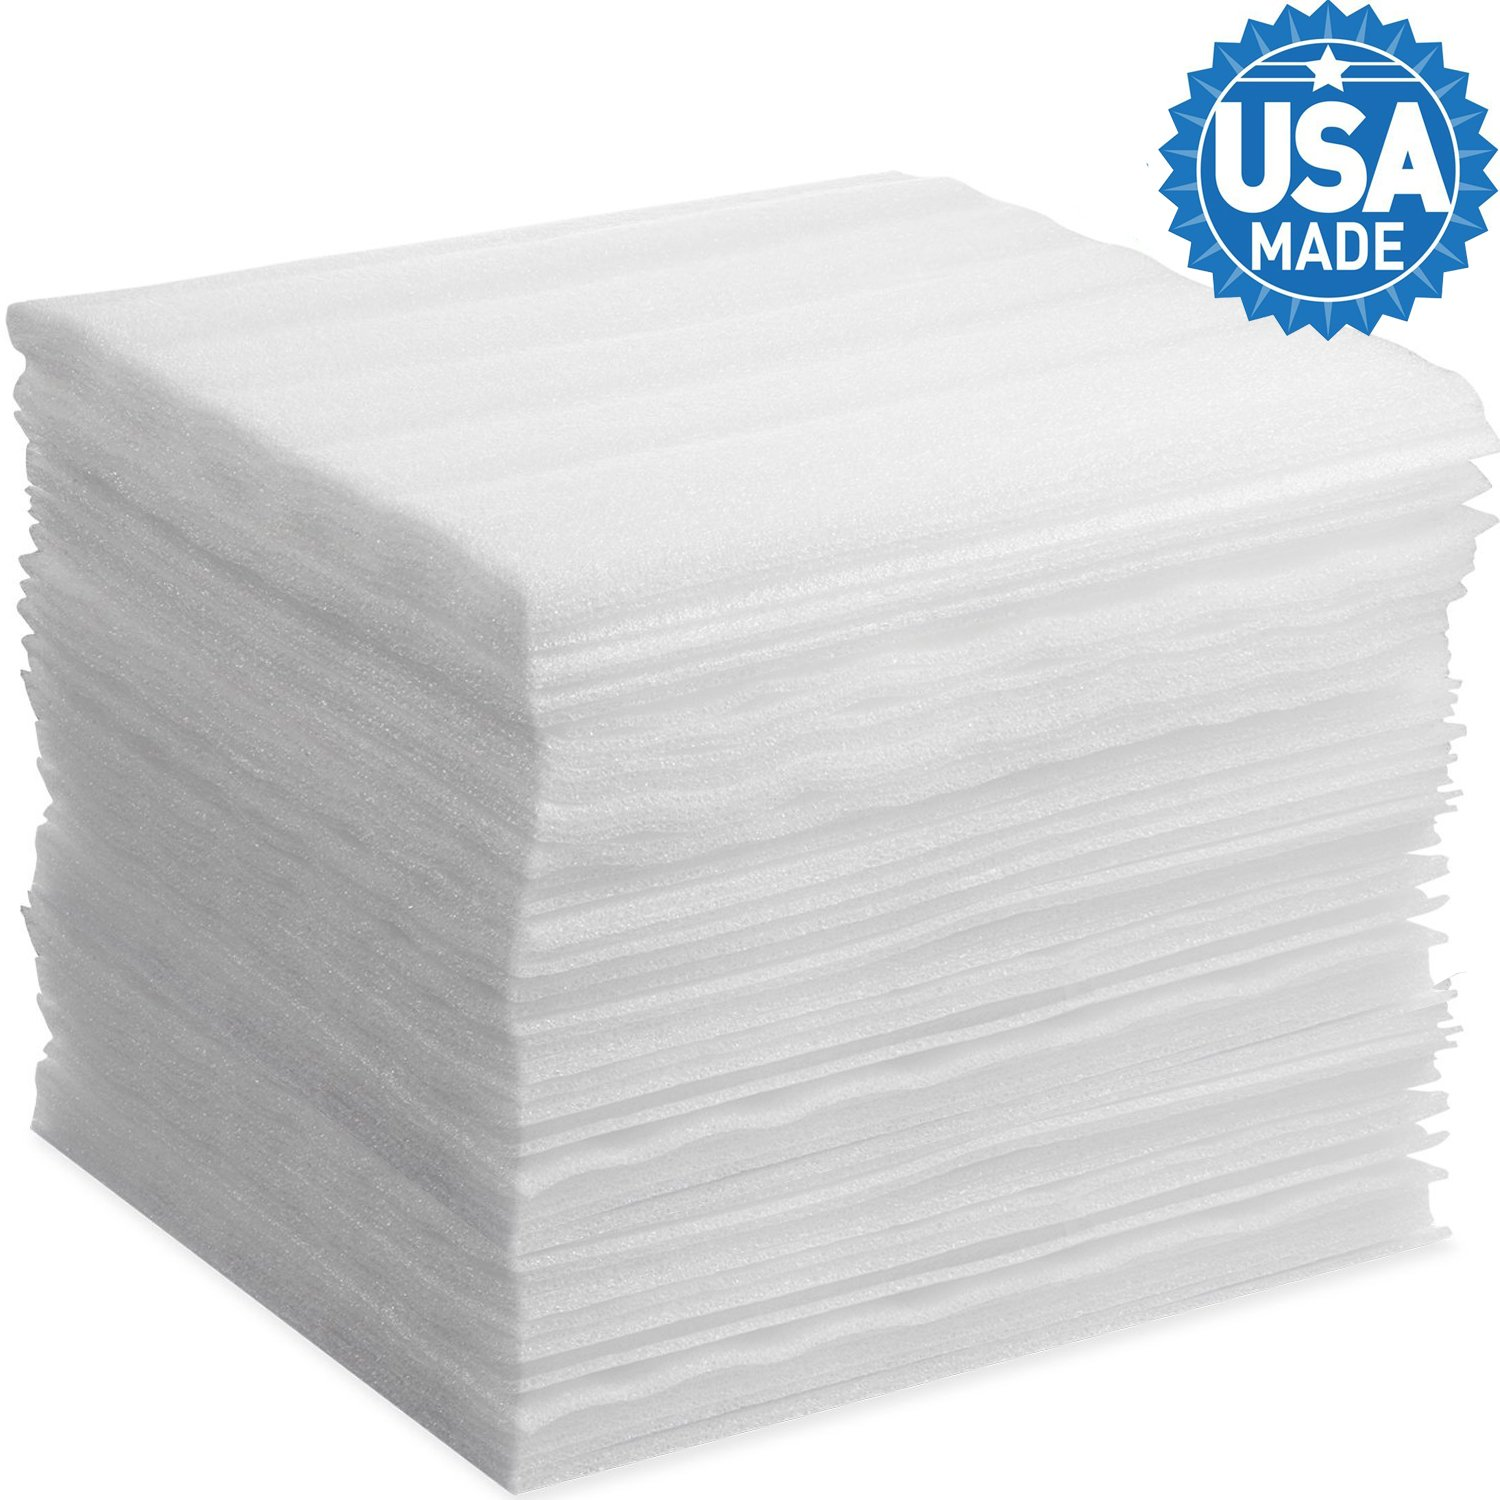 """Foam Wraps, DAT 18"""" x 18"""" Foam Wrap Sheets Cushioning for Moving Storage Packing and Shipping Supplies, 50-Pack (18'' x 18'', White)"""